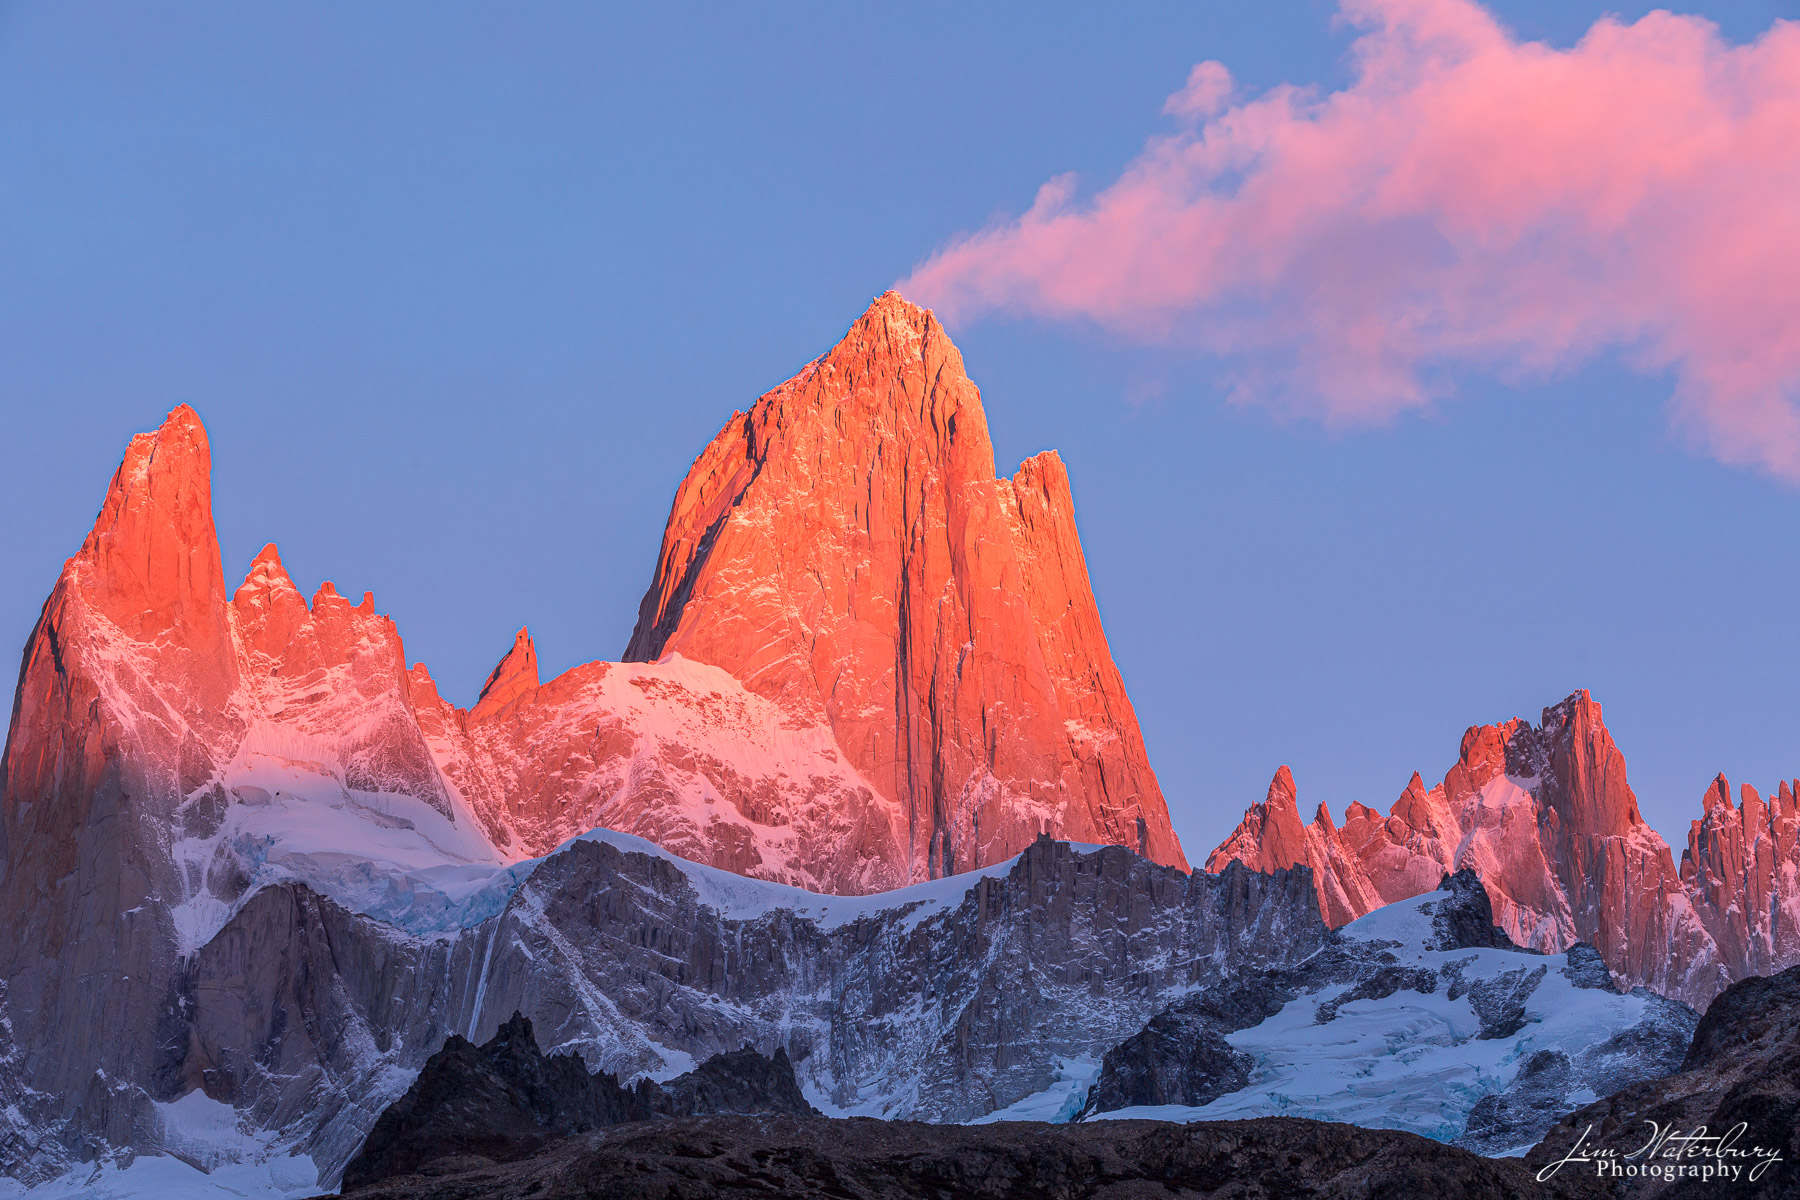 alpenglow, pink, clouds, Fitz Roy, Patagonia, sunrise, plume, photo